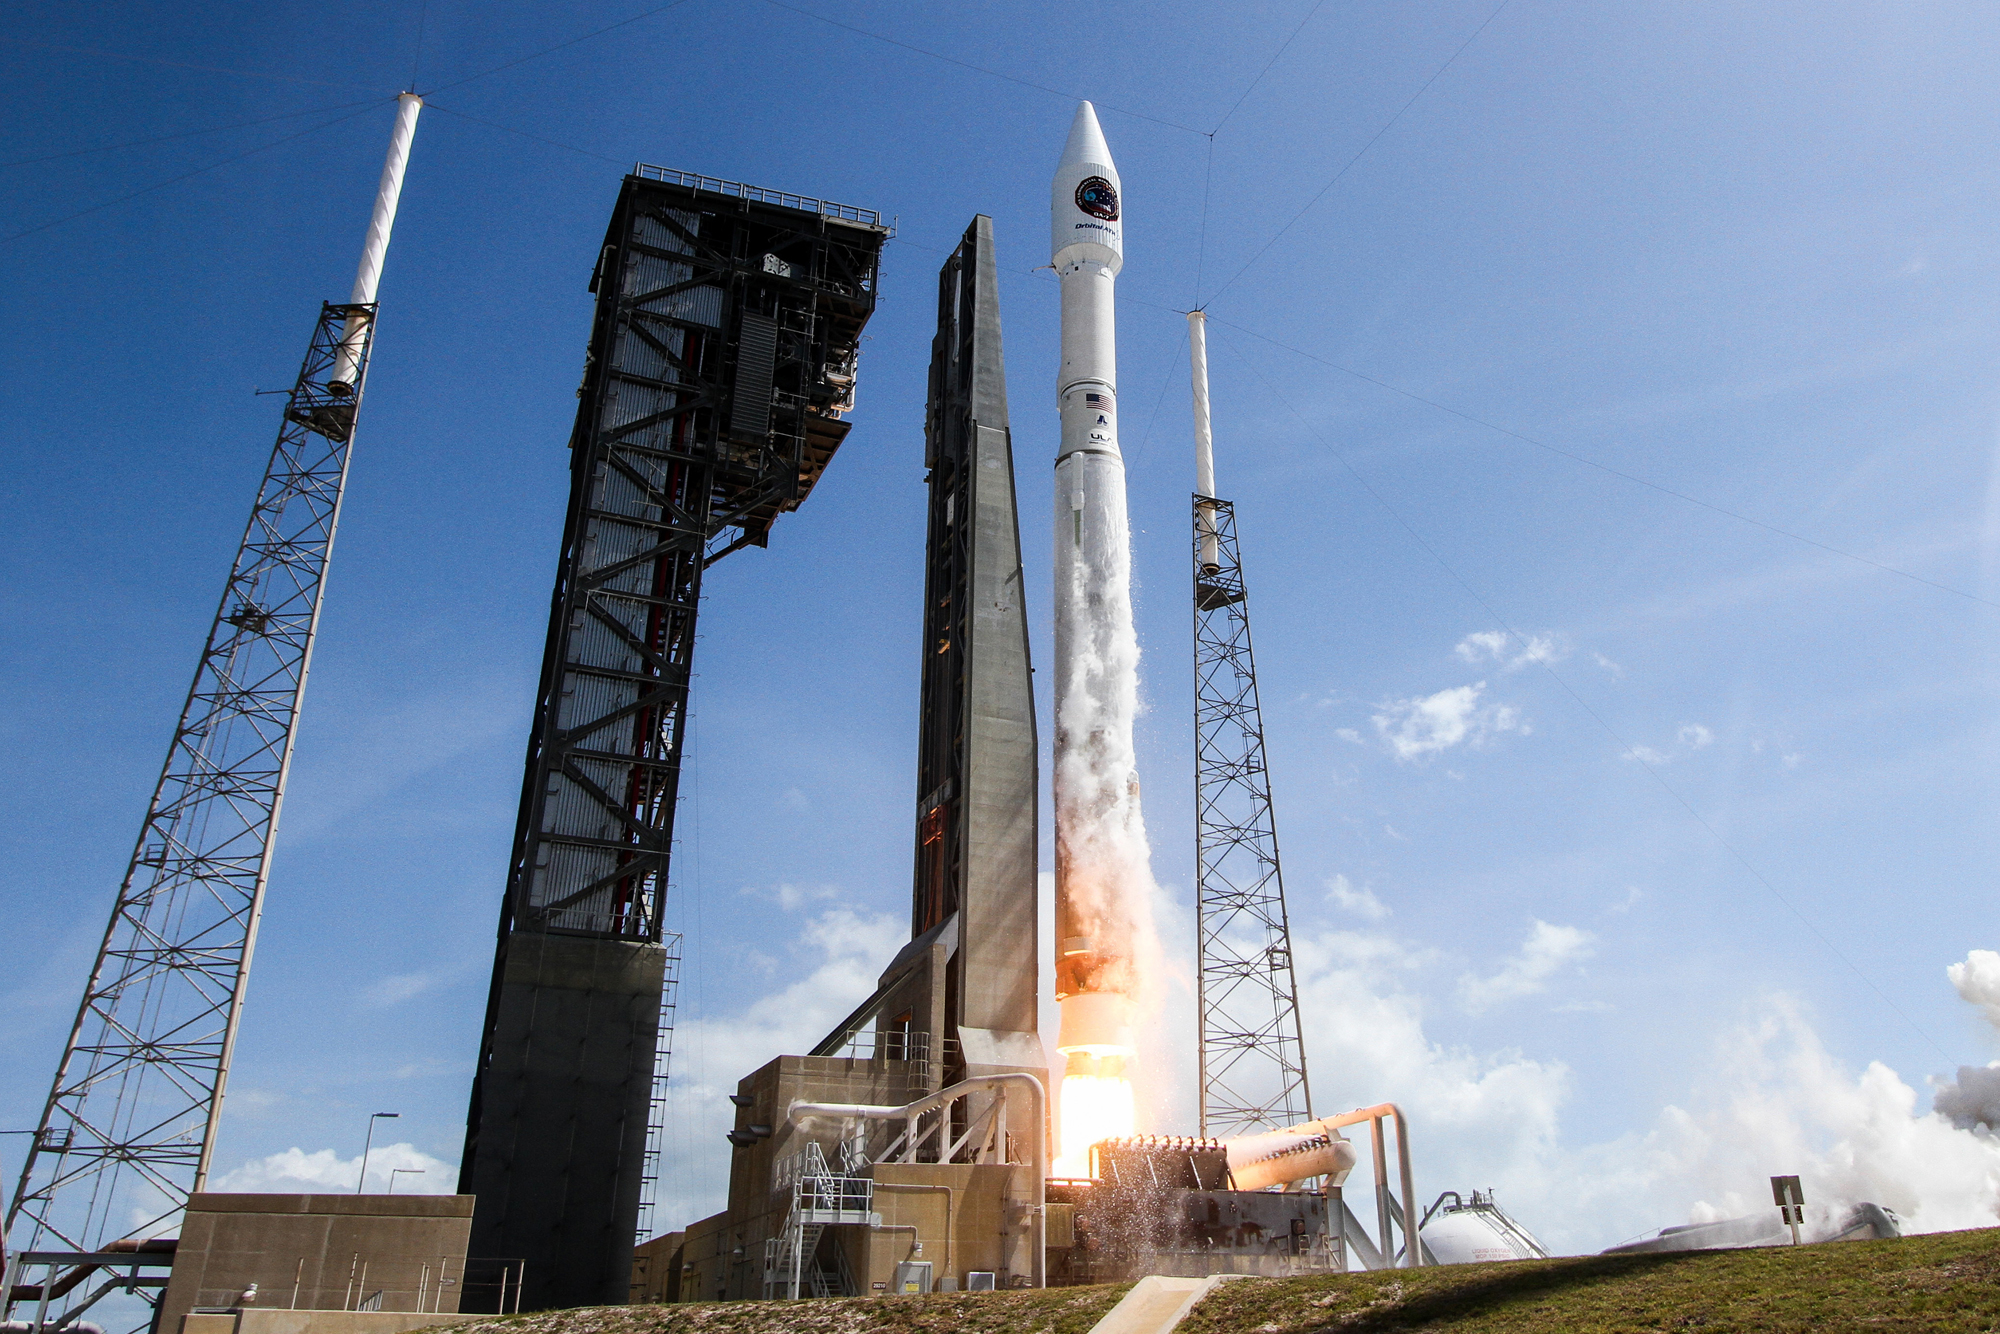 Belated Easter baskets blast off to the Space Station